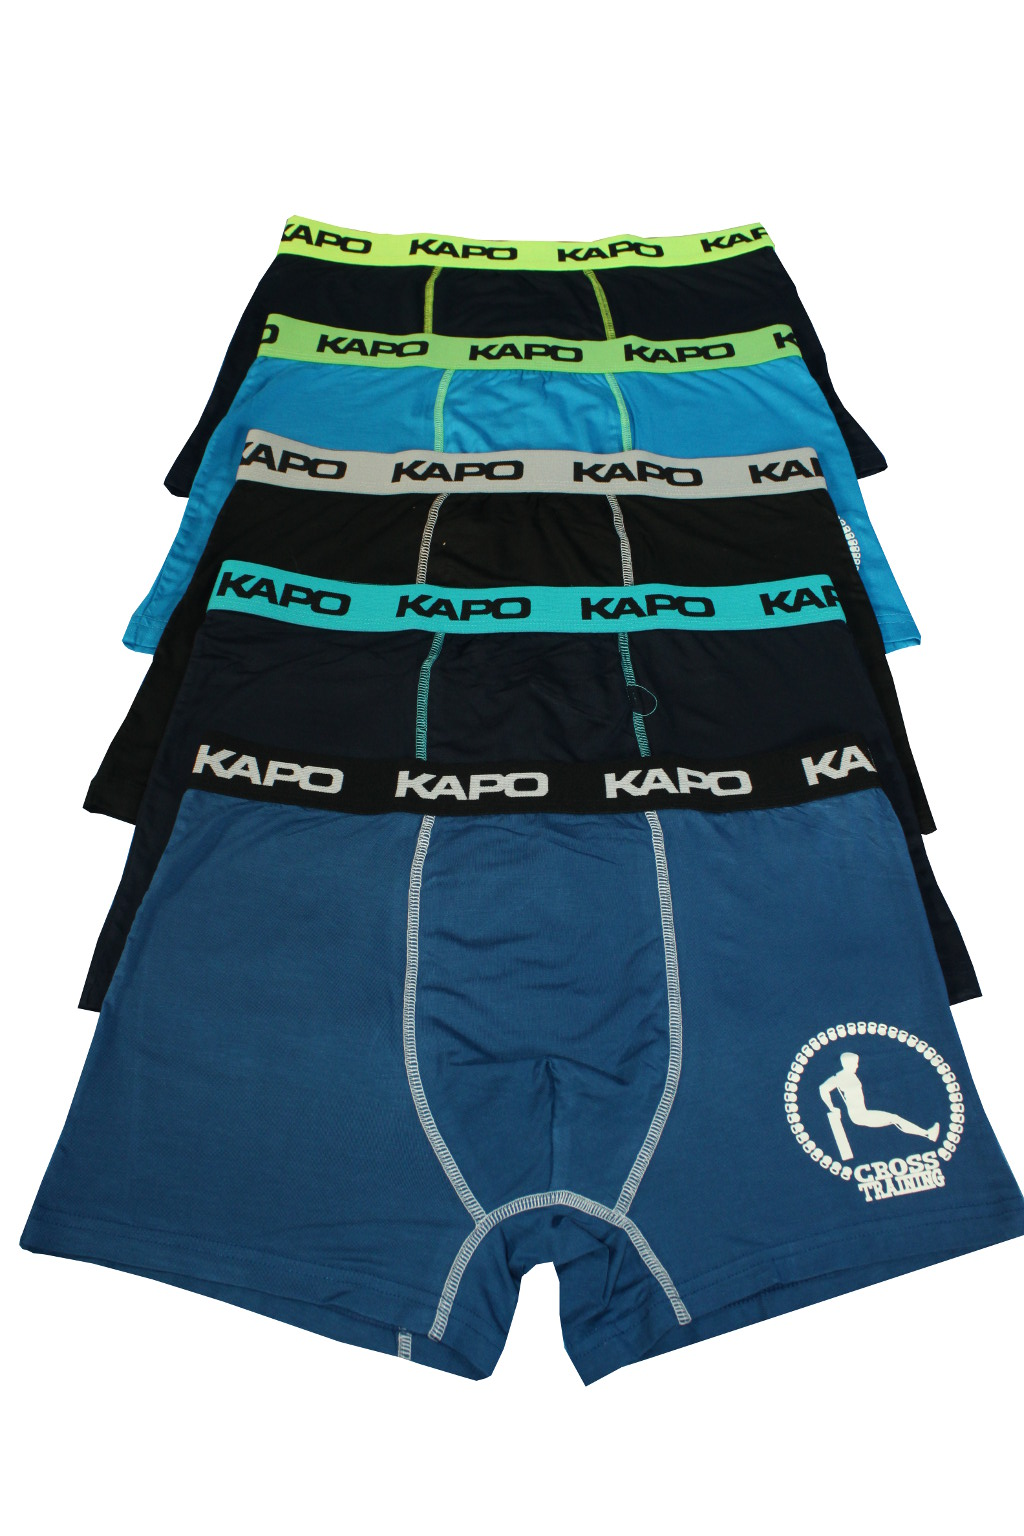 CrossTraining KAPO bambus boxerky 3ks XL MIX